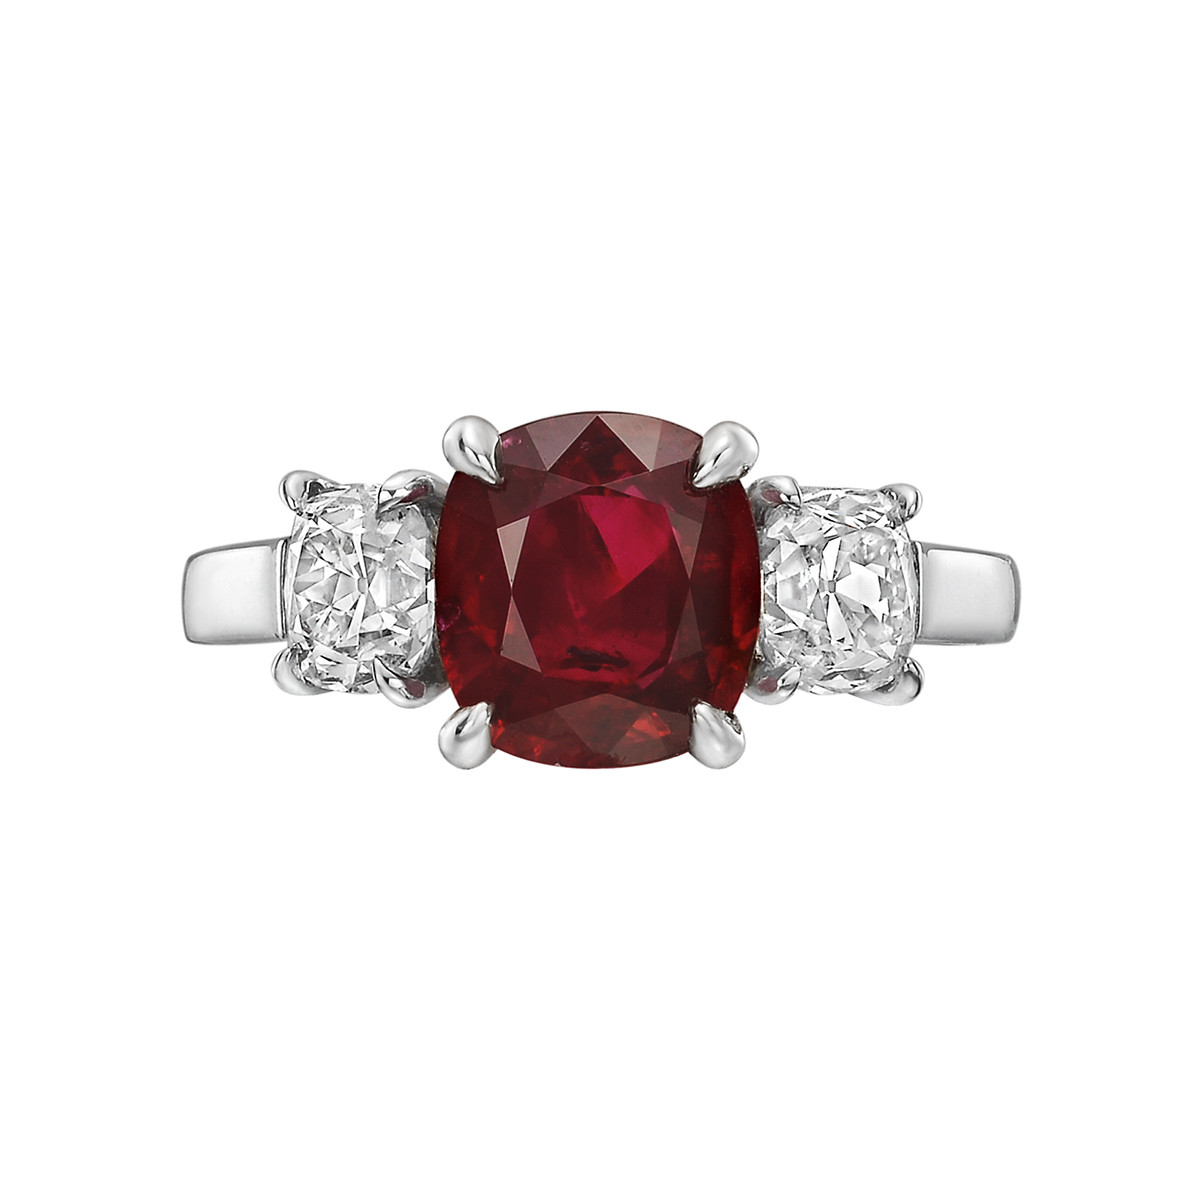 2.16ct No-Heat Burmese Ruby Ring